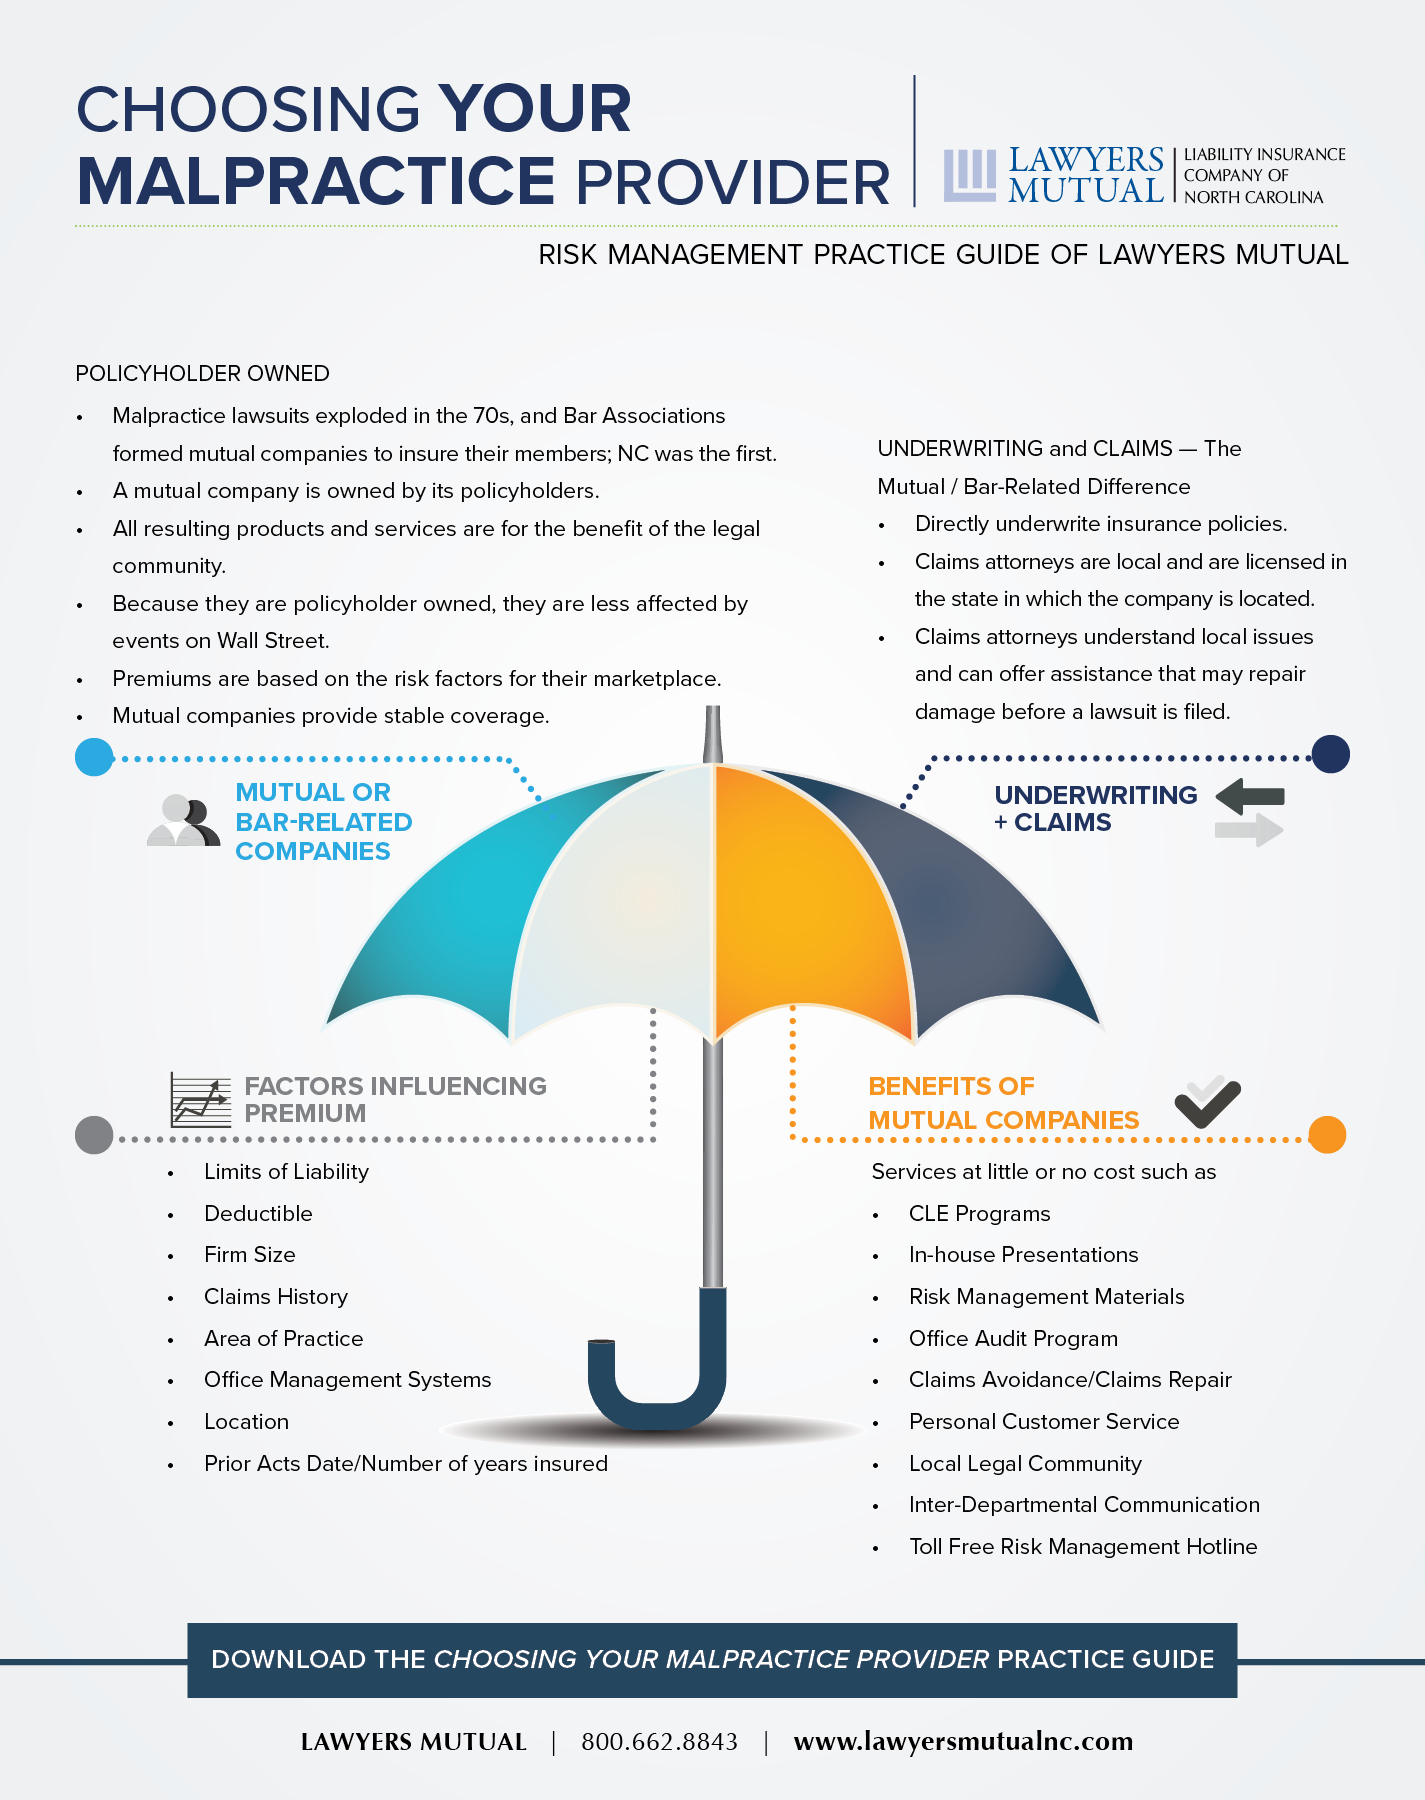 choosing your malpractice provider infographic